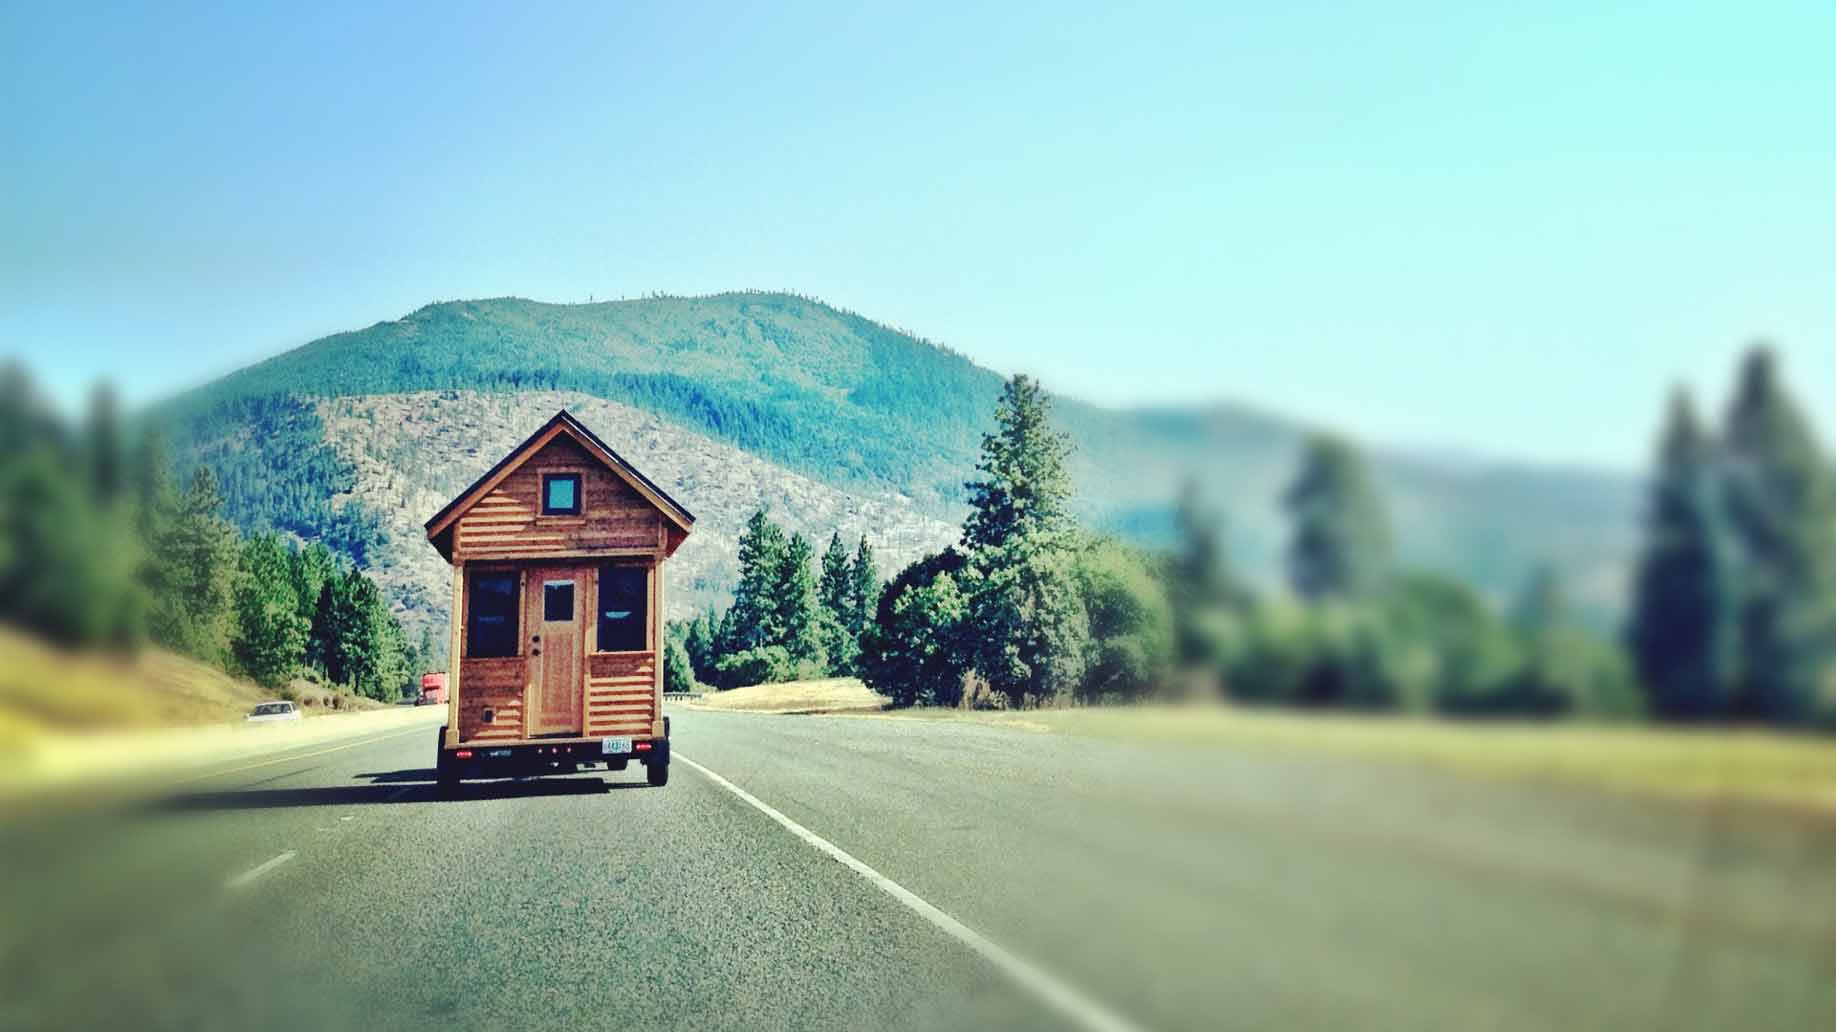 transporting a tiny house photo by Tammy Strobel